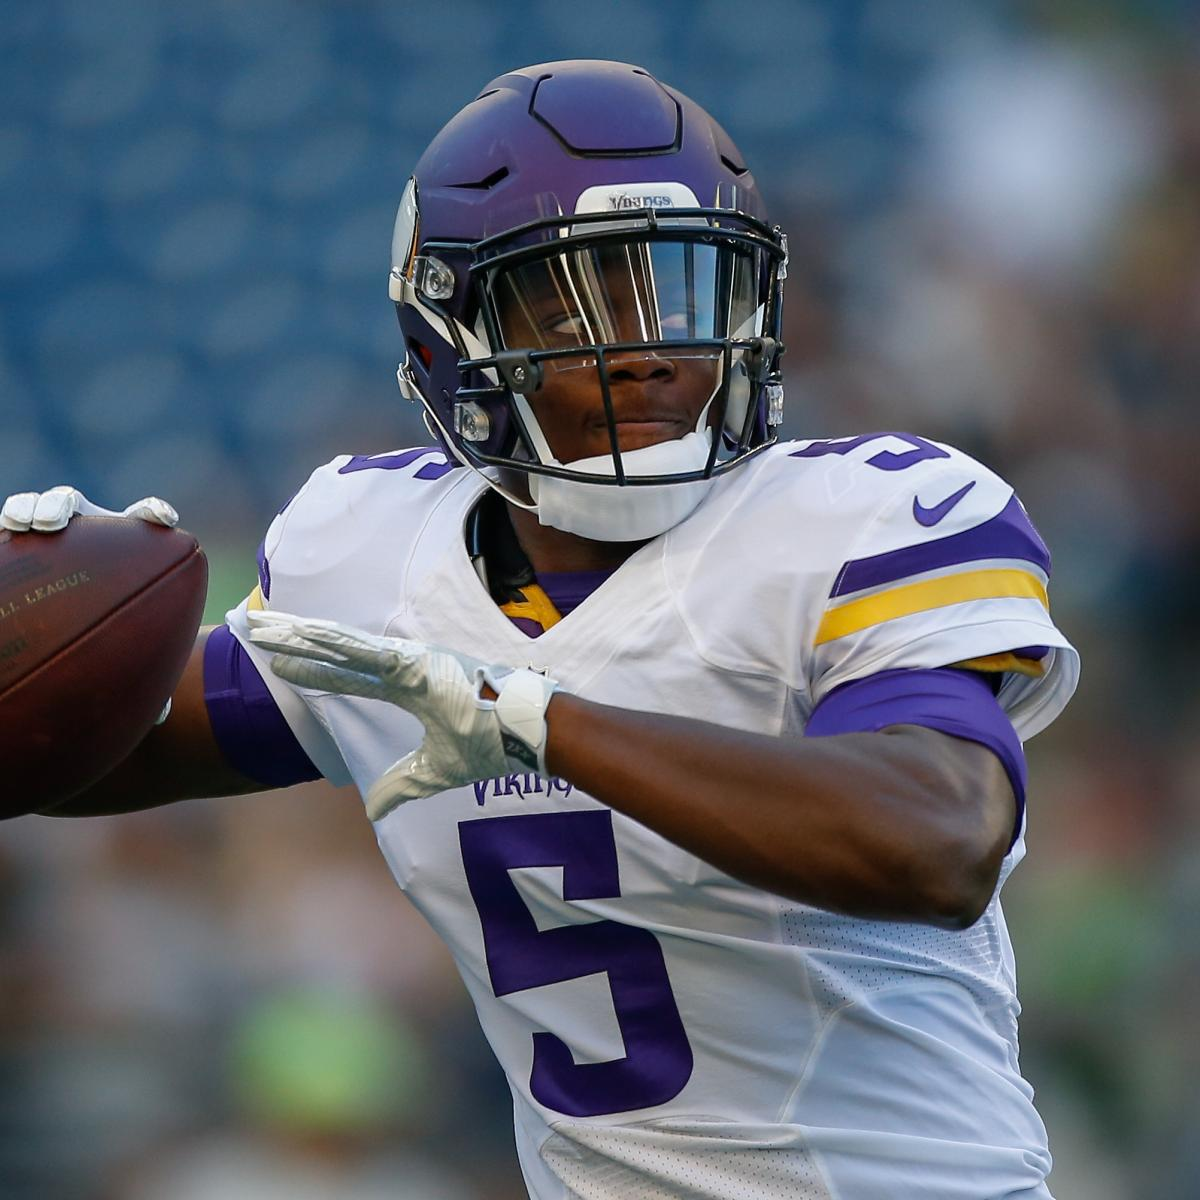 Teddy bridgewater injury update vikings expect qb to miss 2017 too report says sporting news - Teddy Bridgewater Injury Updates On Vikings Qb S Recovery From Knee Surgery Bleacher Report